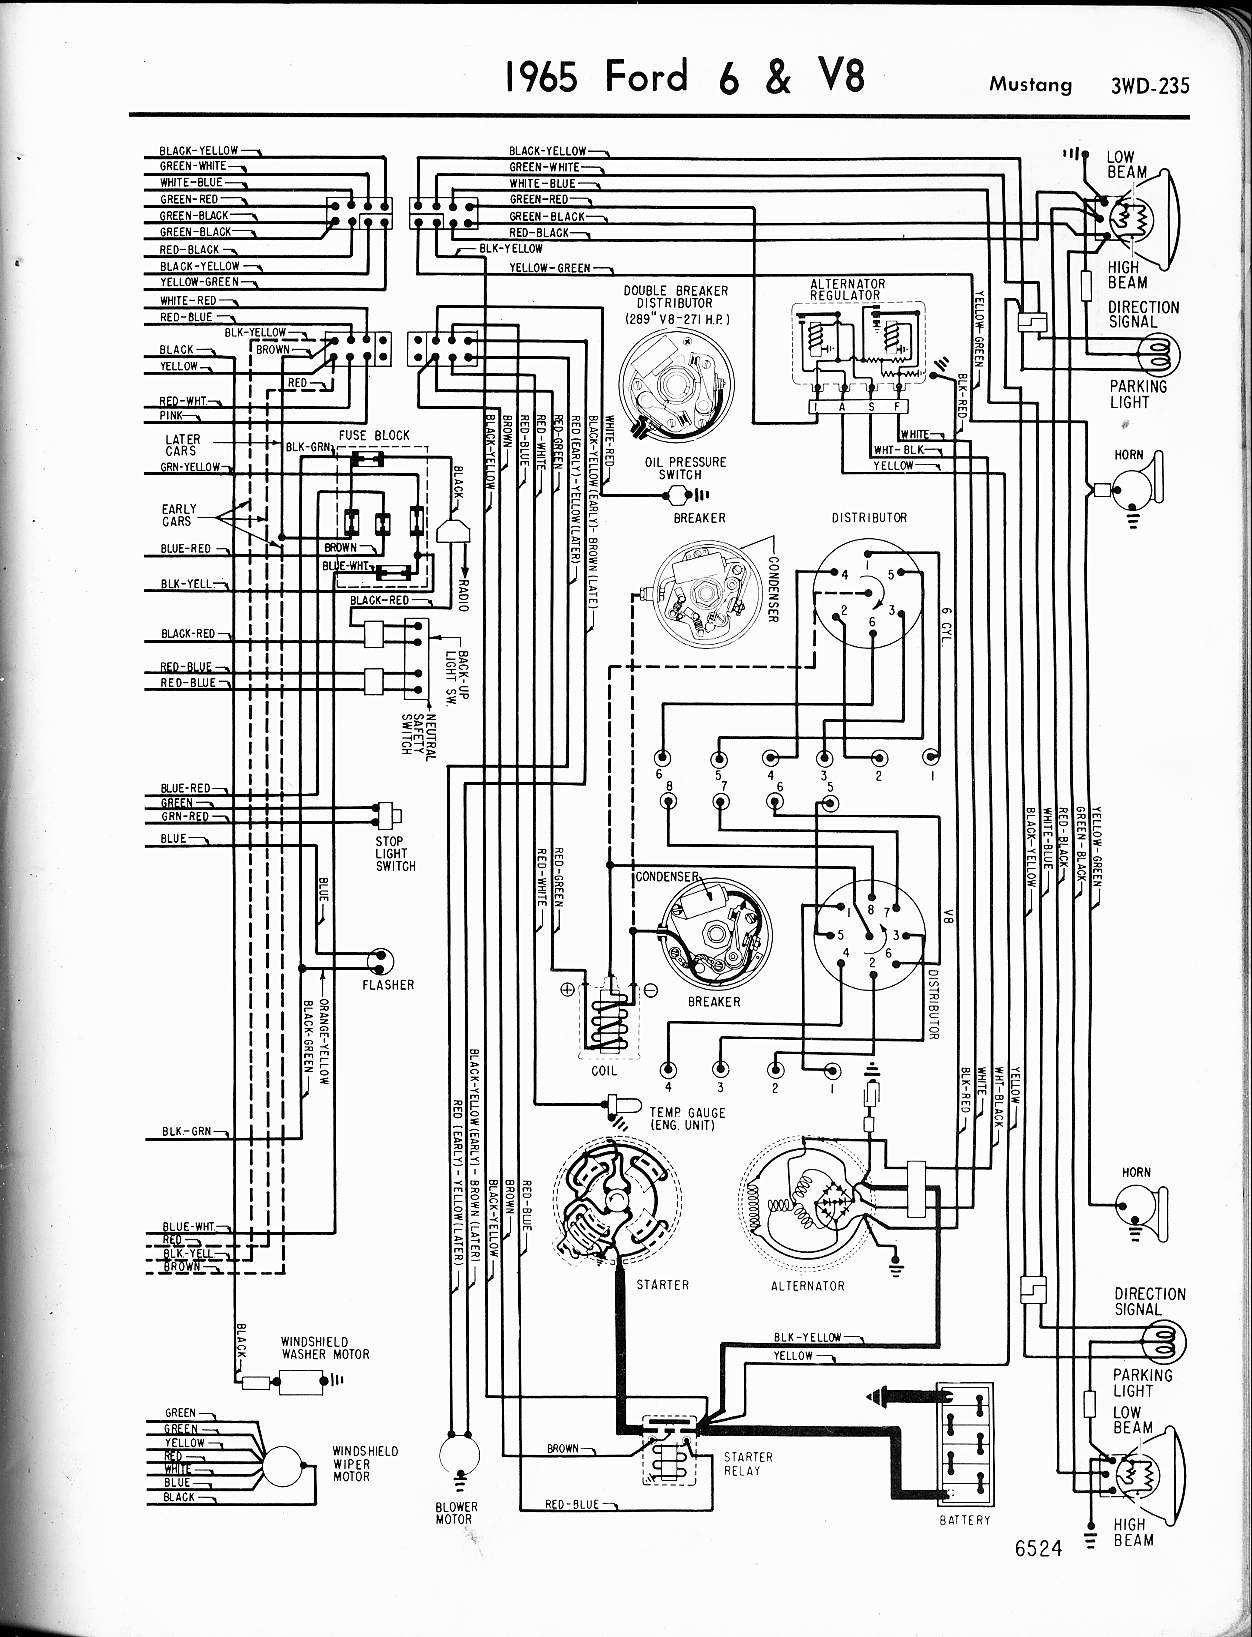 1965_mustang_wiring_2 ford diagrams 1965 mustang under dash wiring diagram at love-stories.co